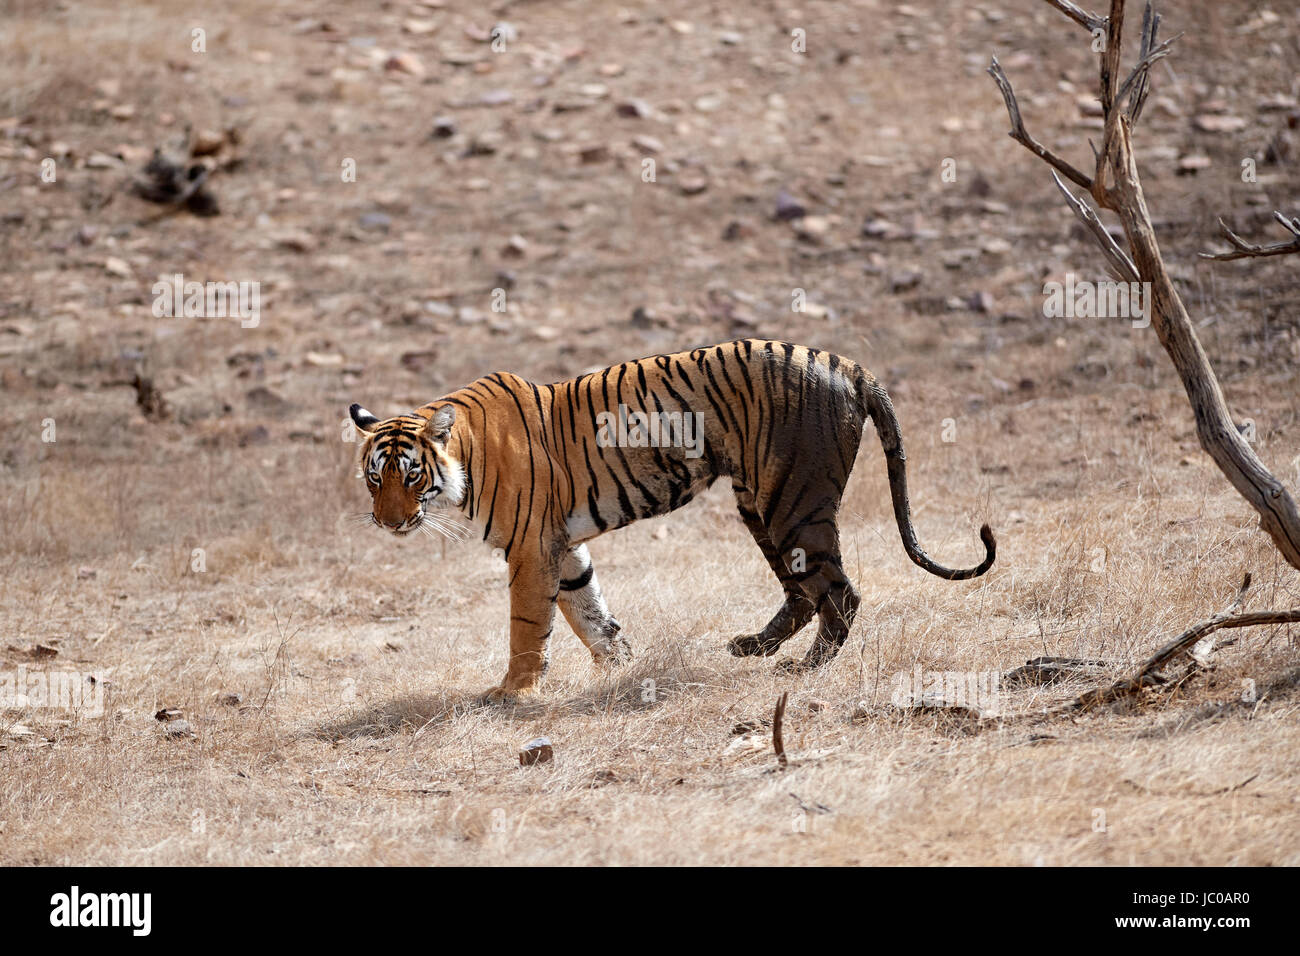 A Female Bengal Tiger walking across a dry piece of land then onto a road with a lake in the back ground - Stock Image